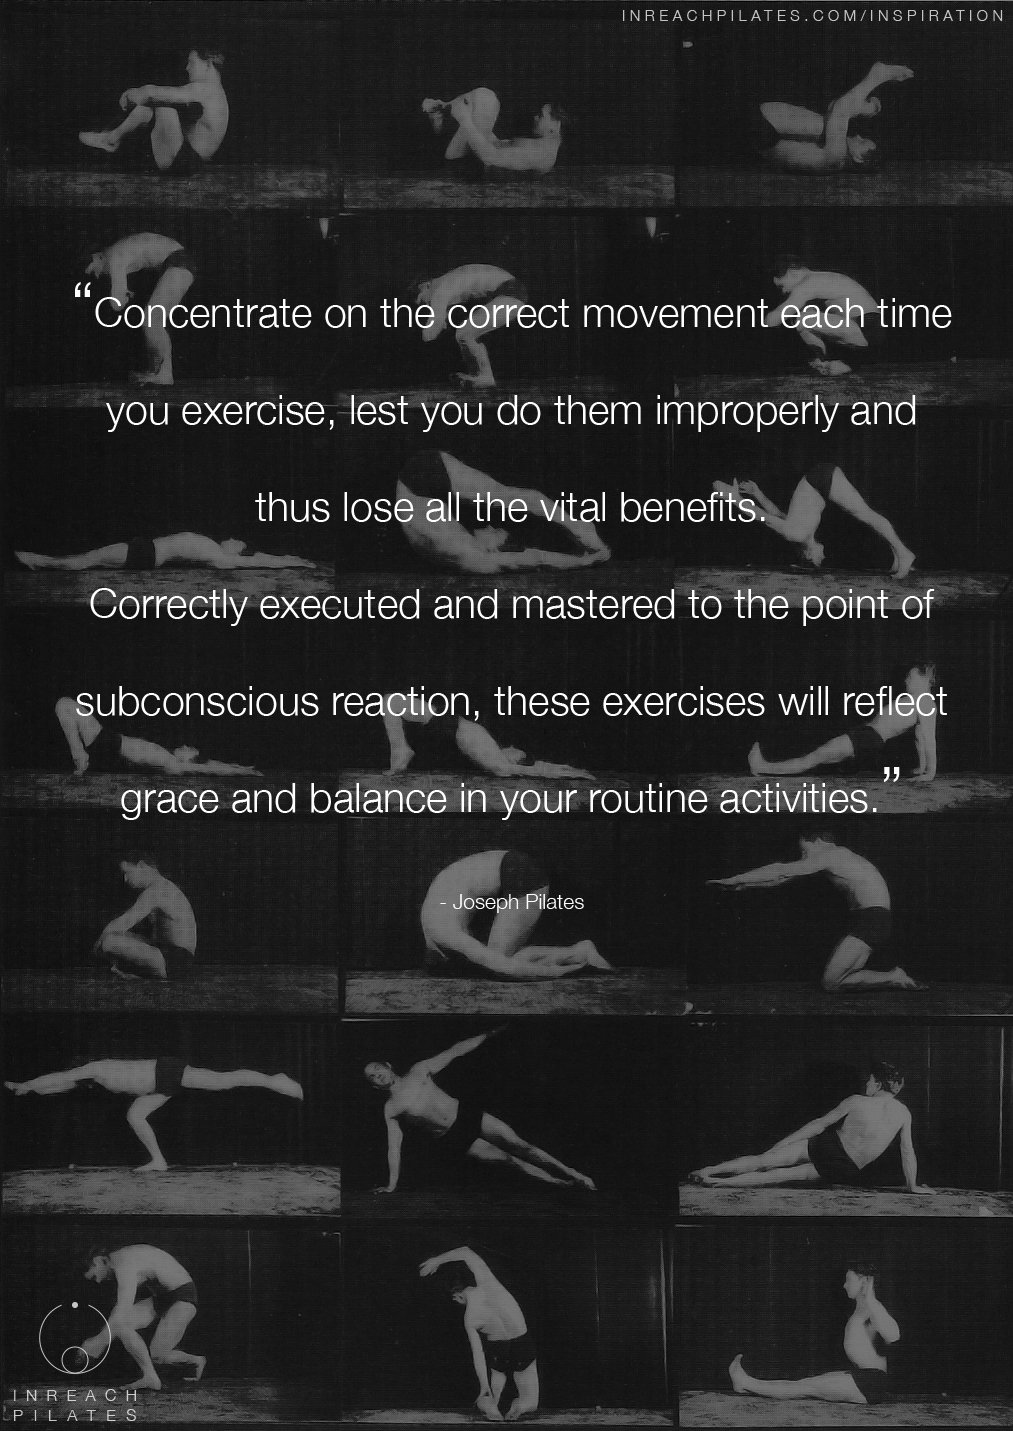 Joseph Pilates - concentrate on the correct movement - quote